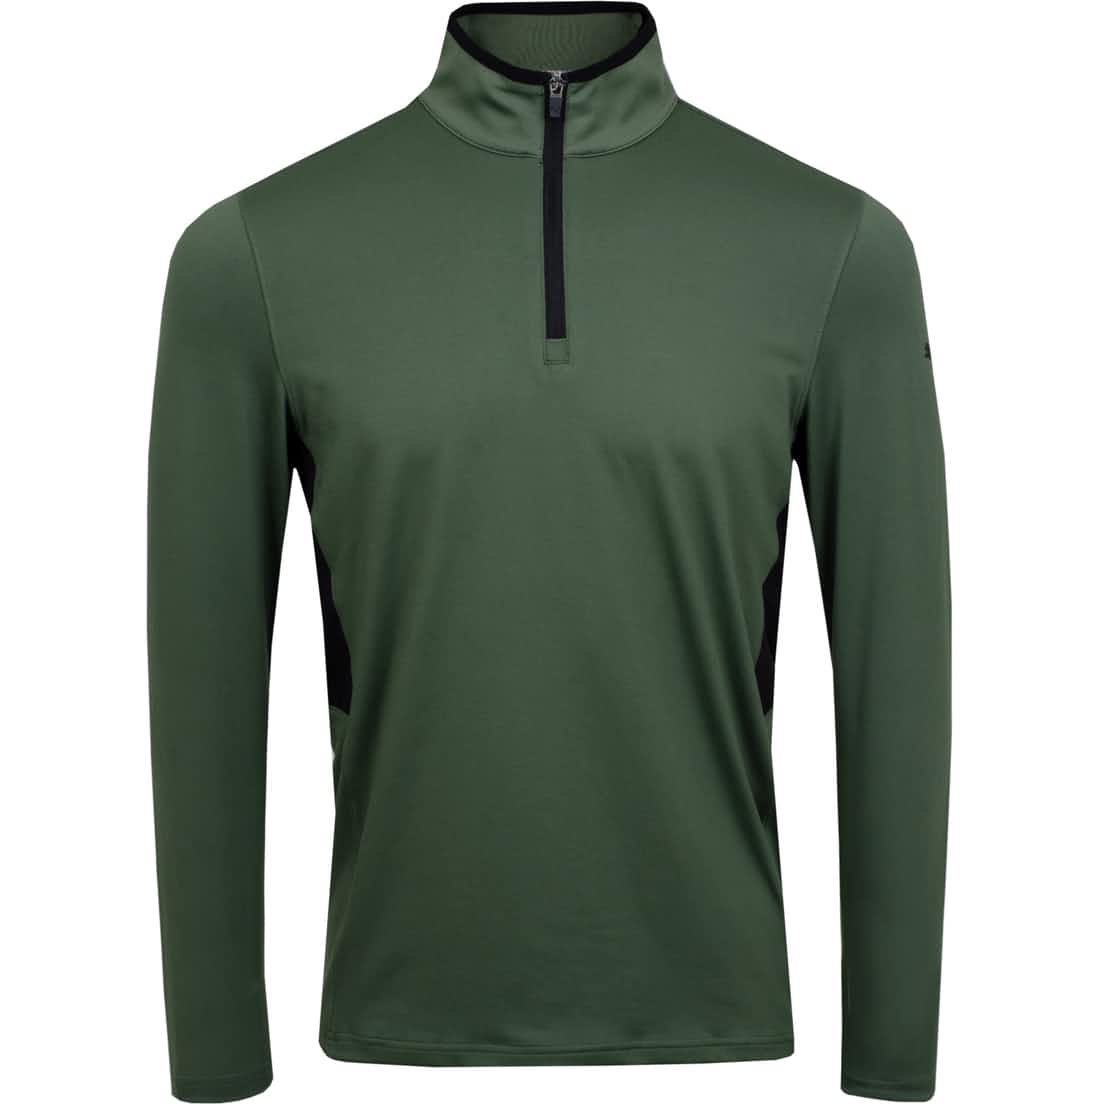 Rotation Quarter Zip Thyme - AW20